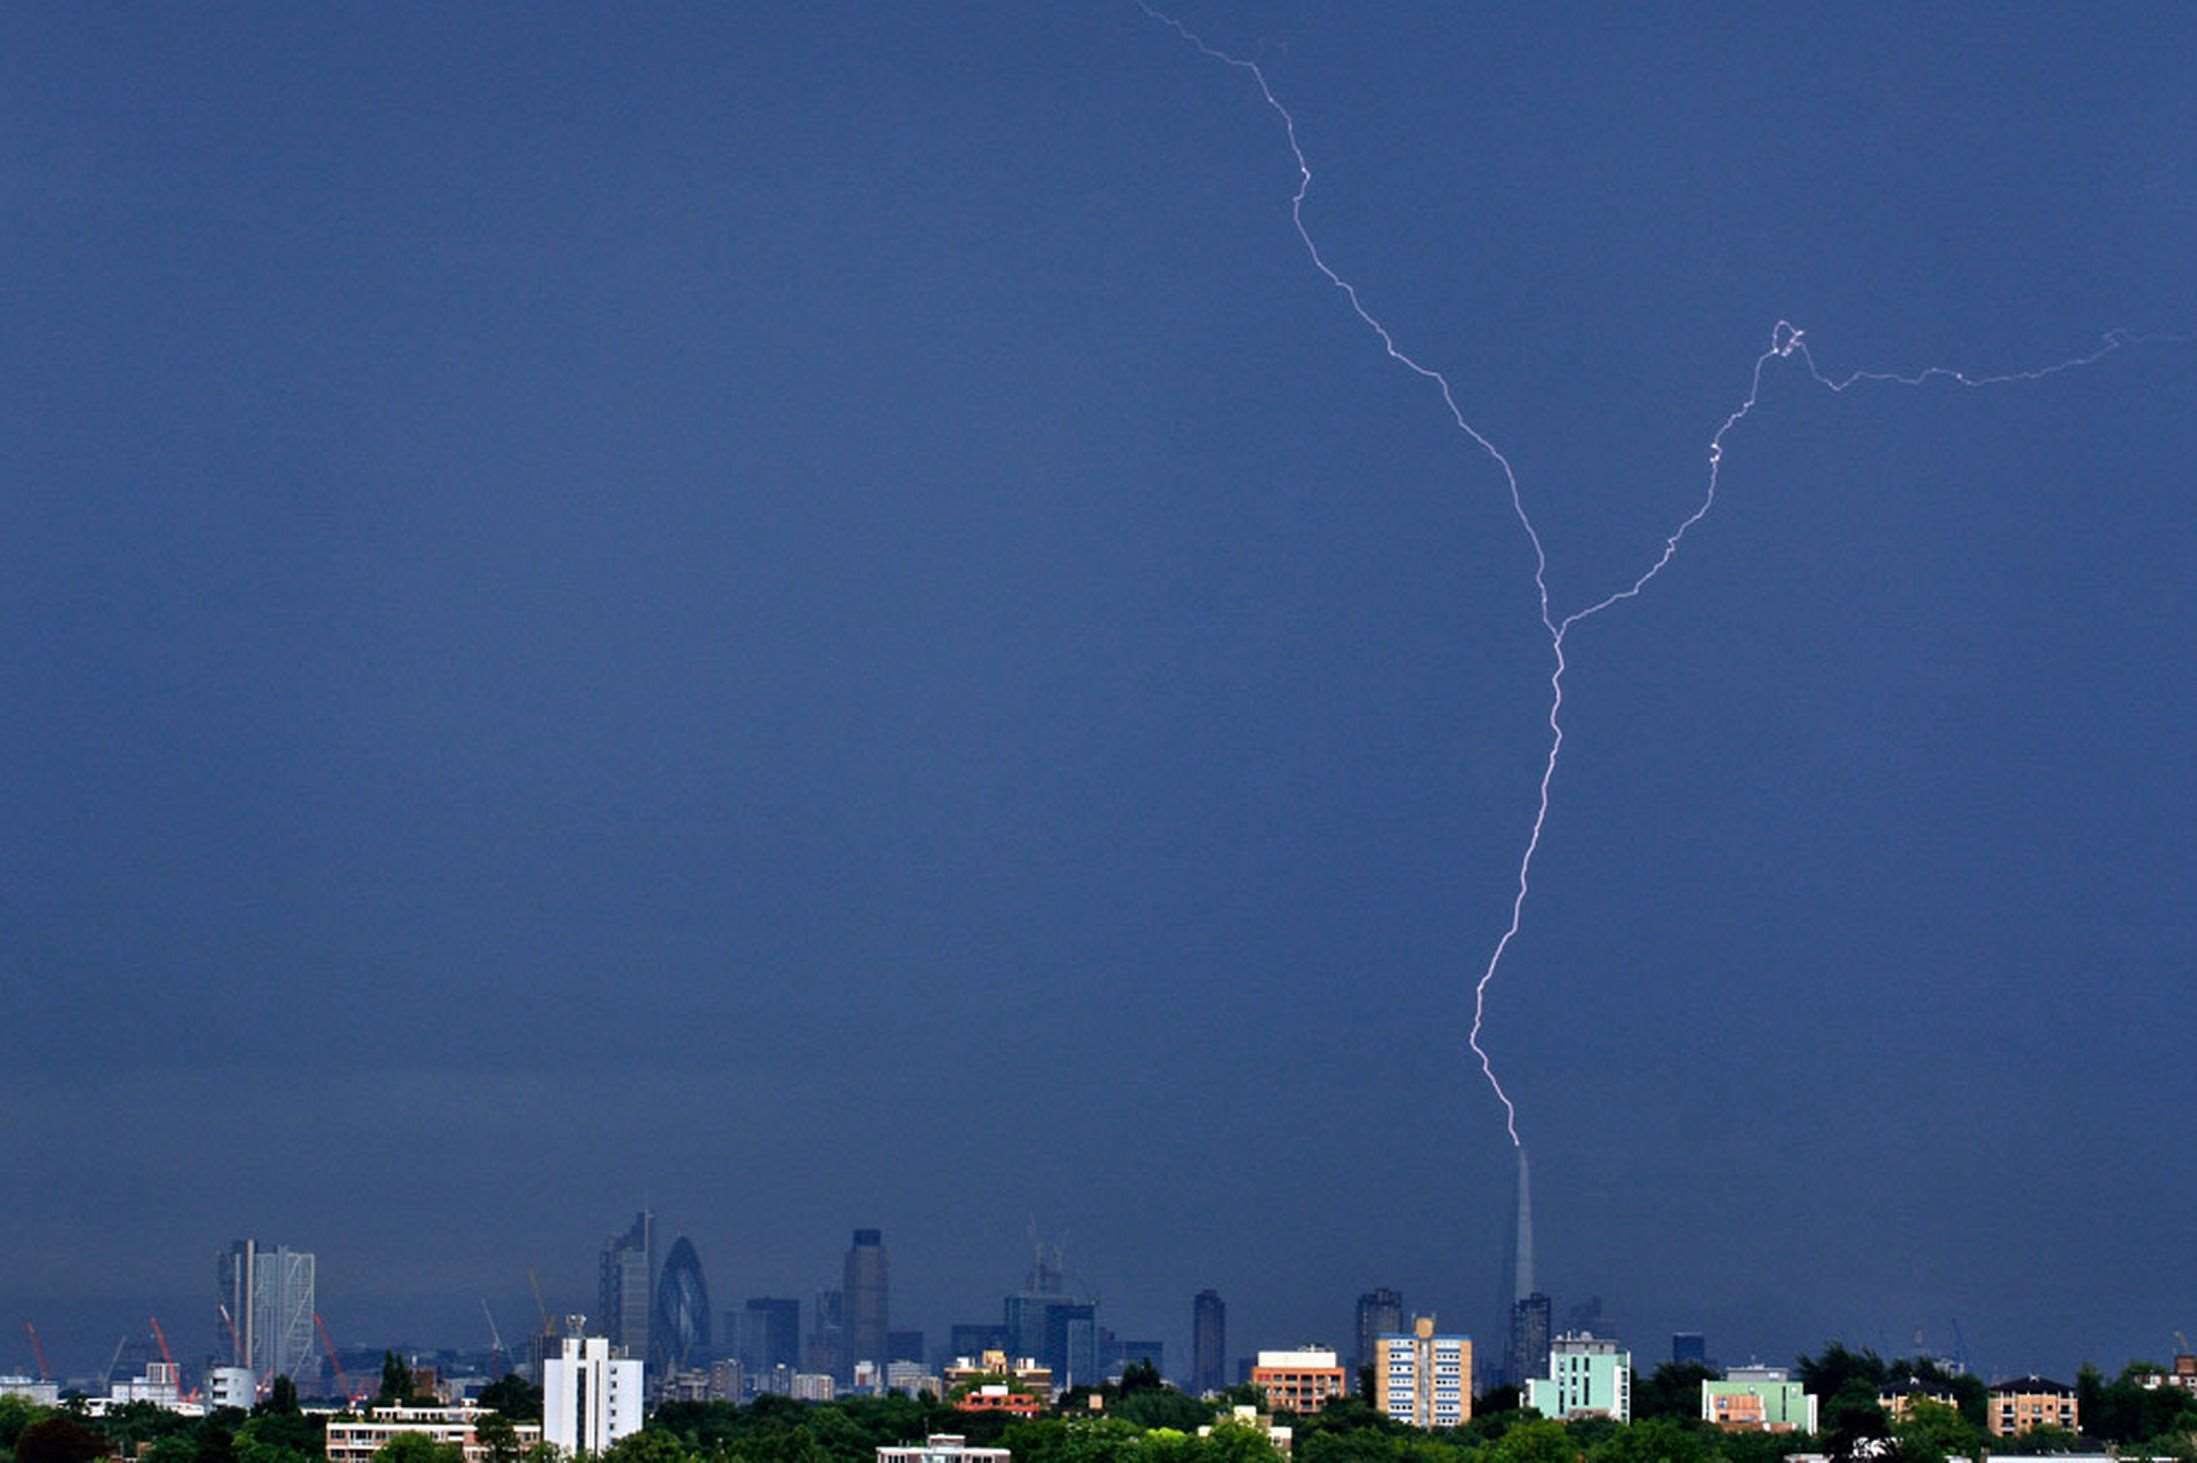 £££Fee for use Lightning strikes The Shard in London